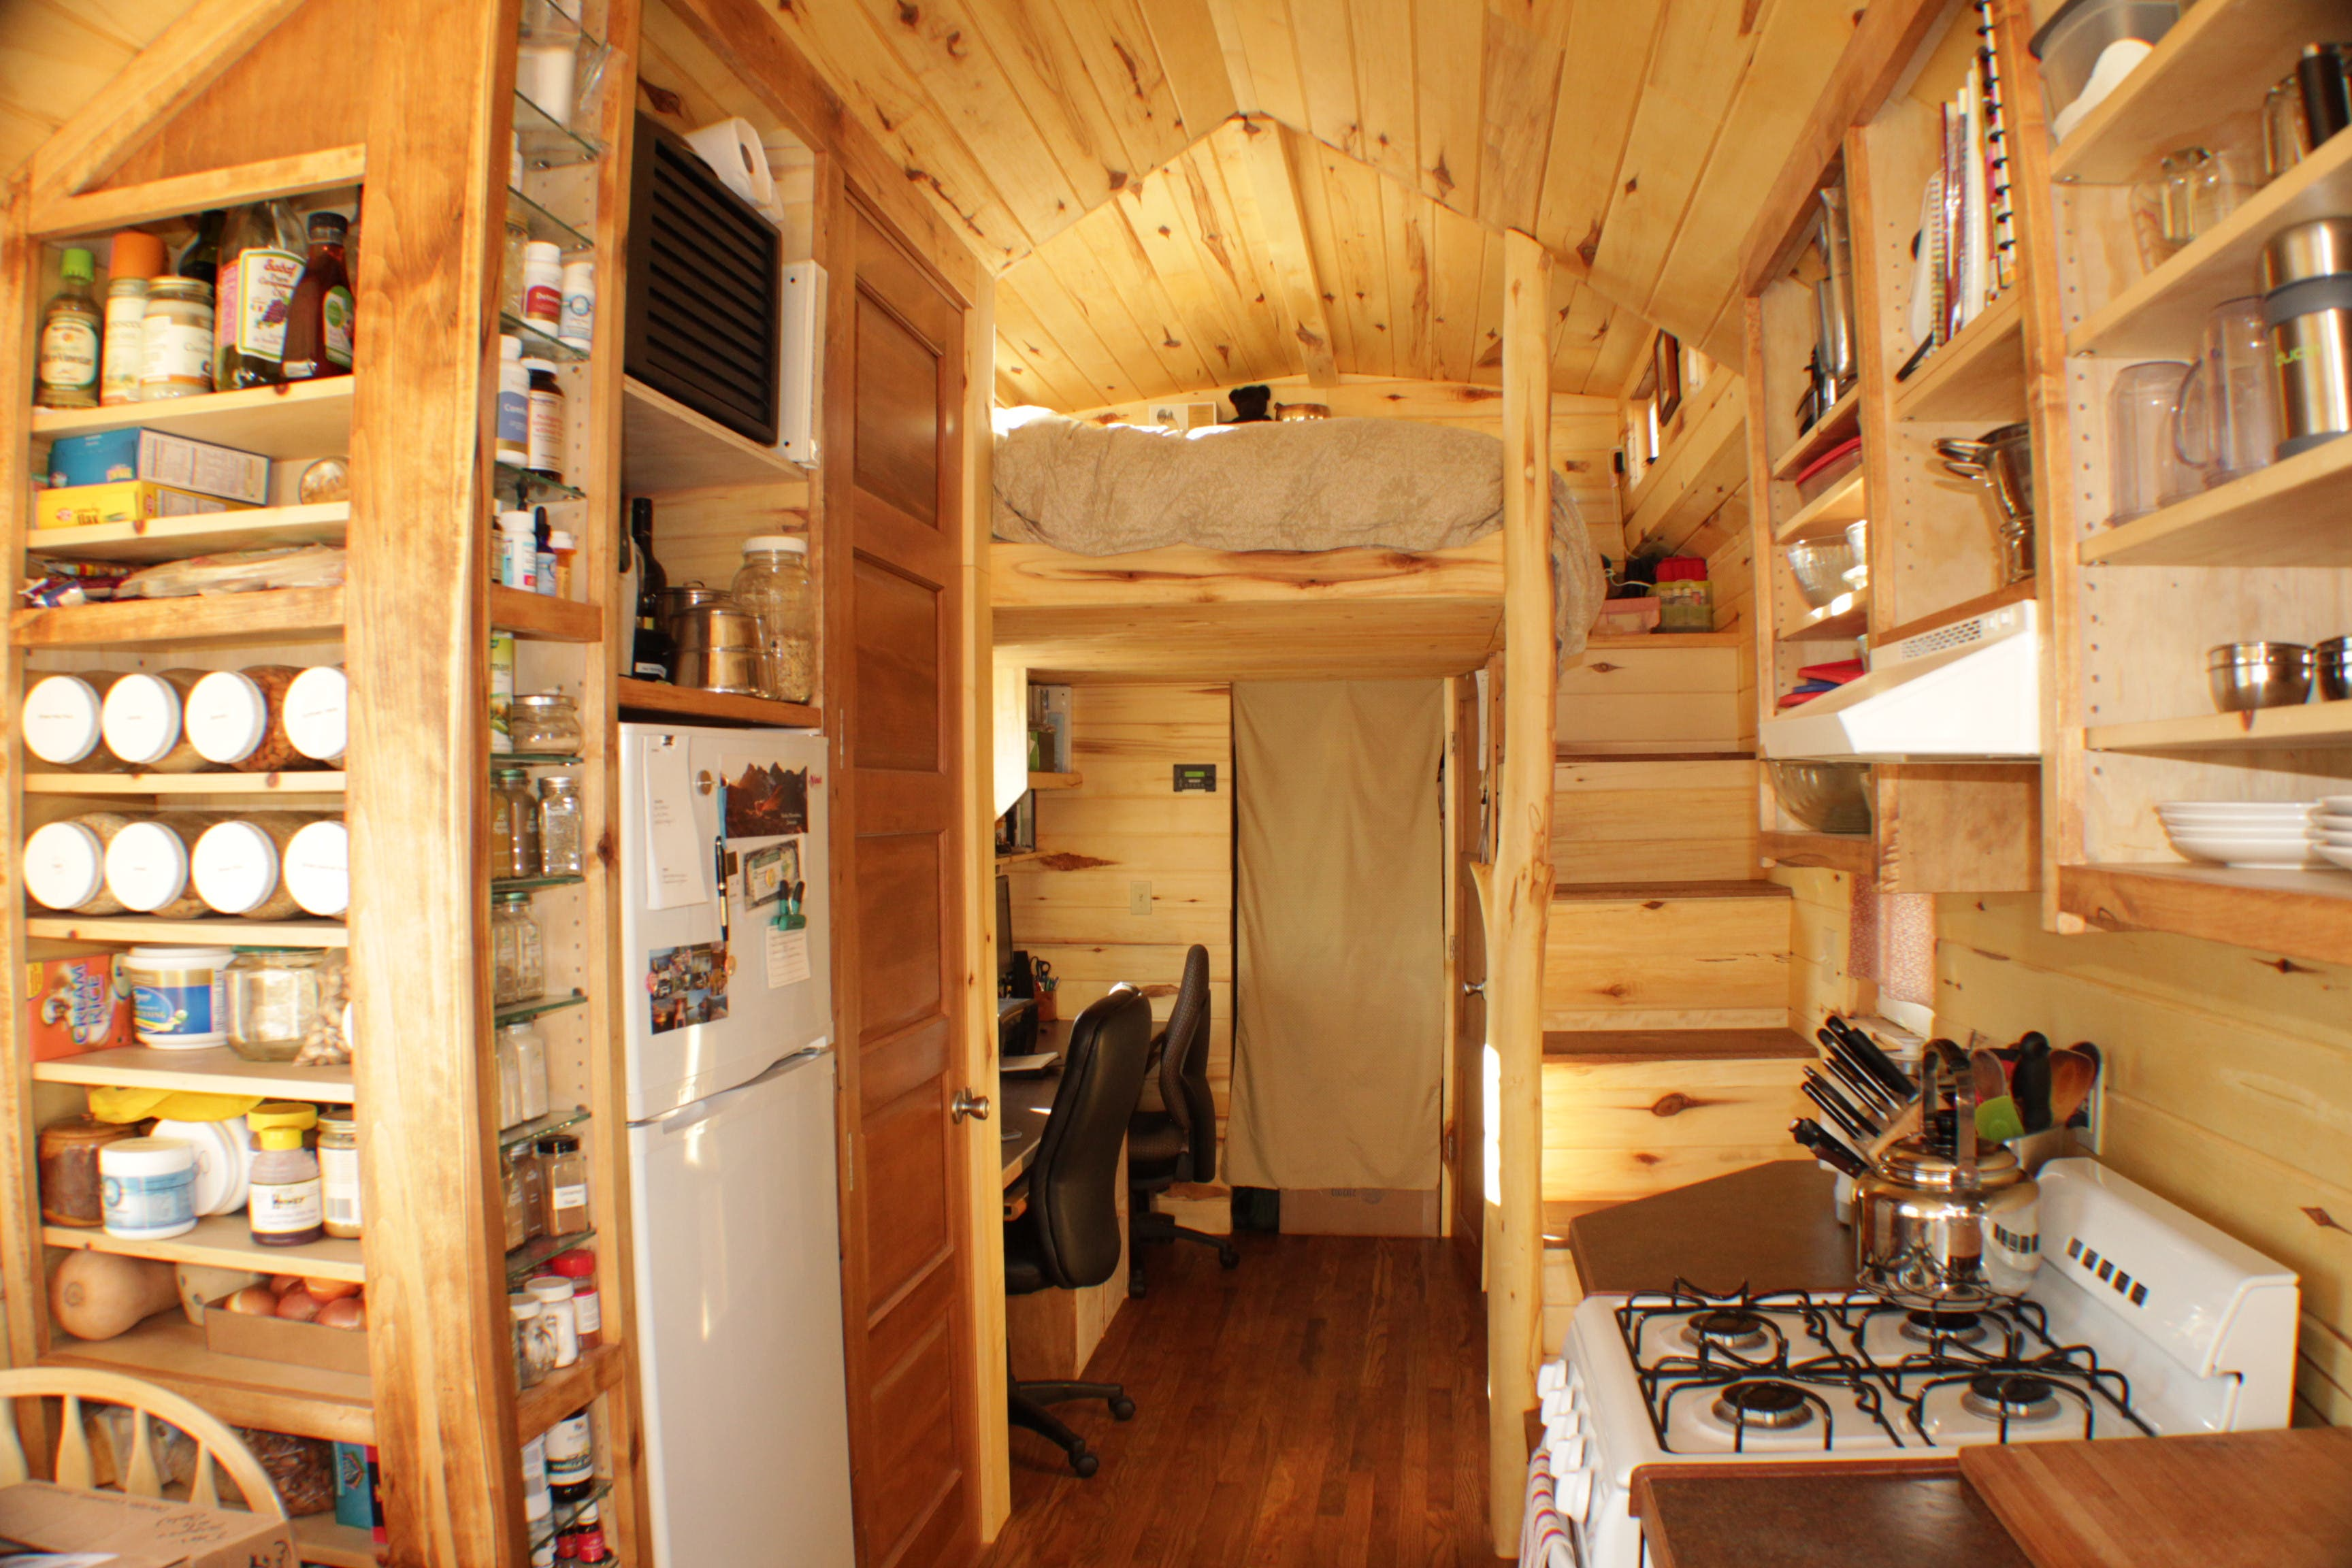 Erin and Dondis Off Grid Tiny House Tiny House Blog